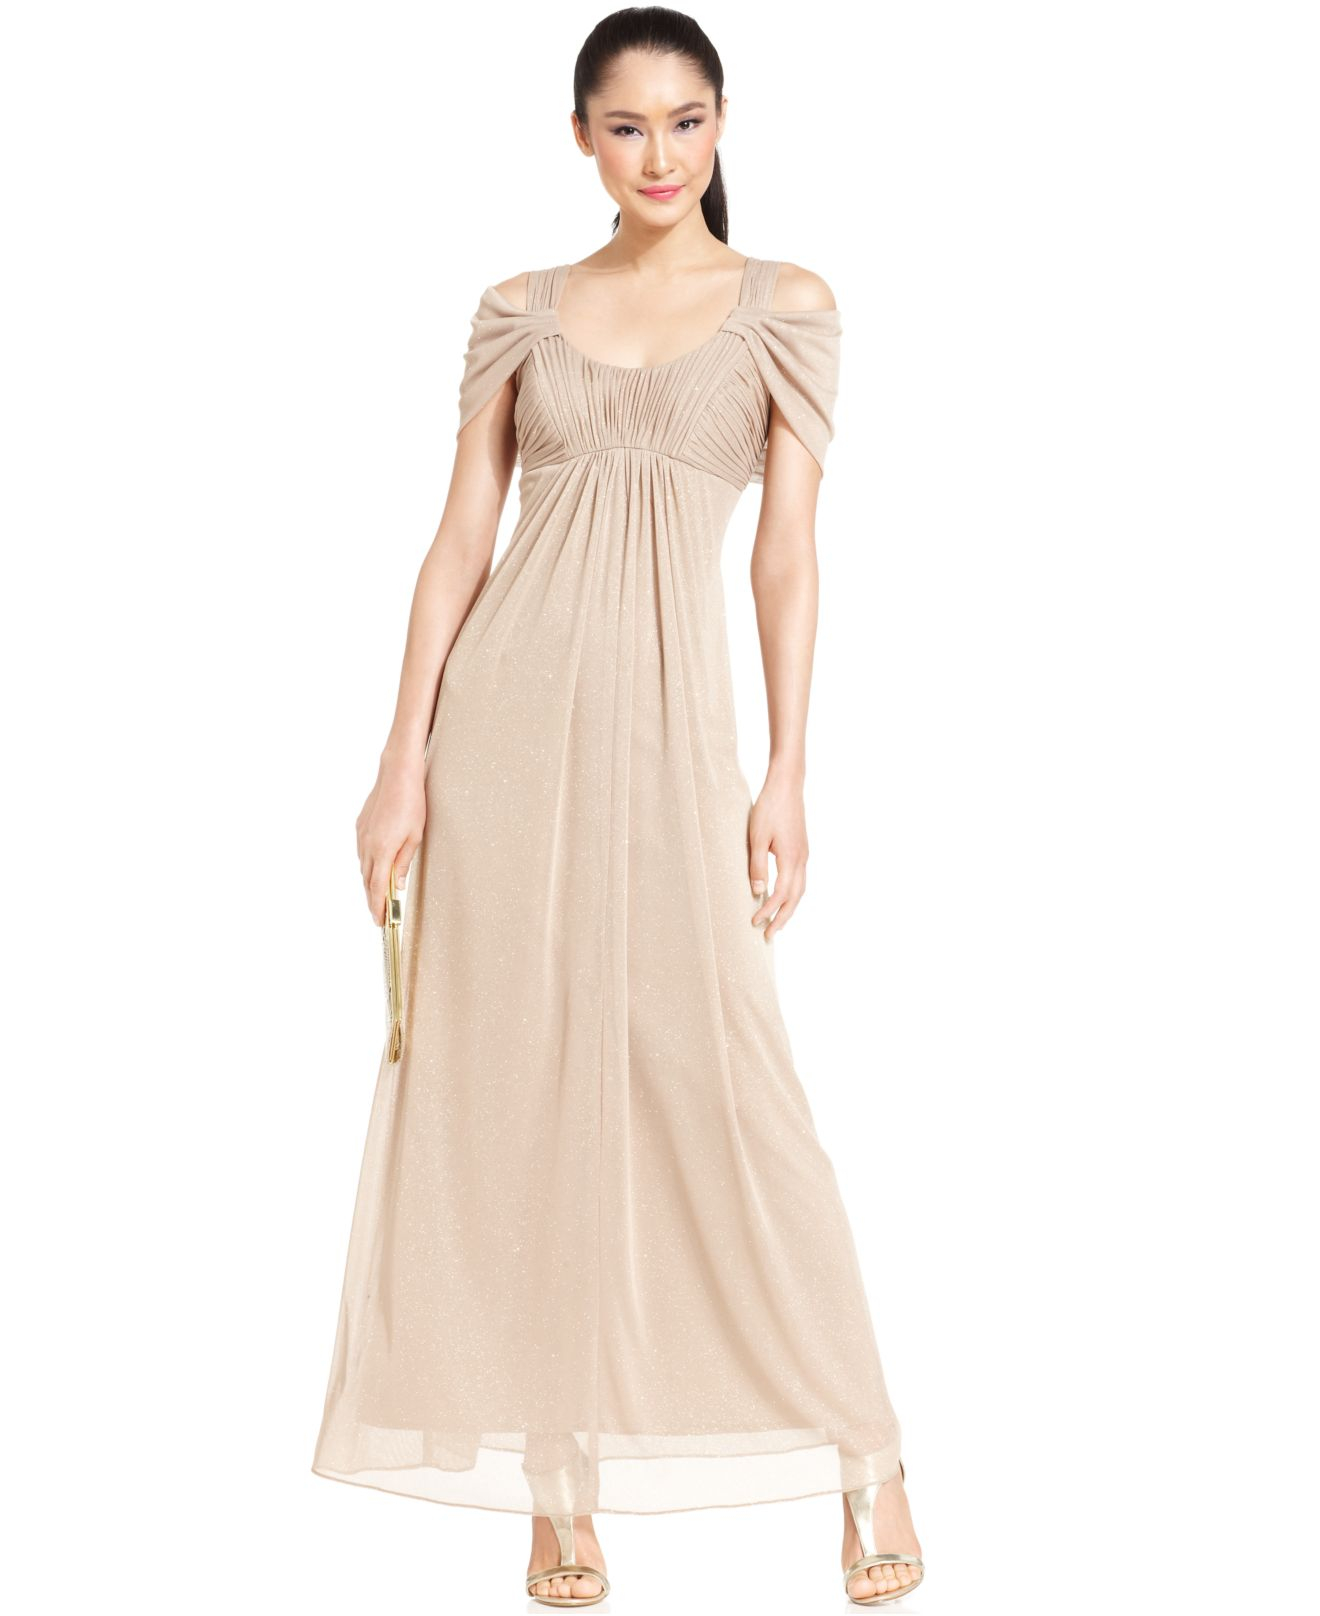 Lyst - Alex Evenings Cold-Shoulder Ruched Glitter Gown in Metallic